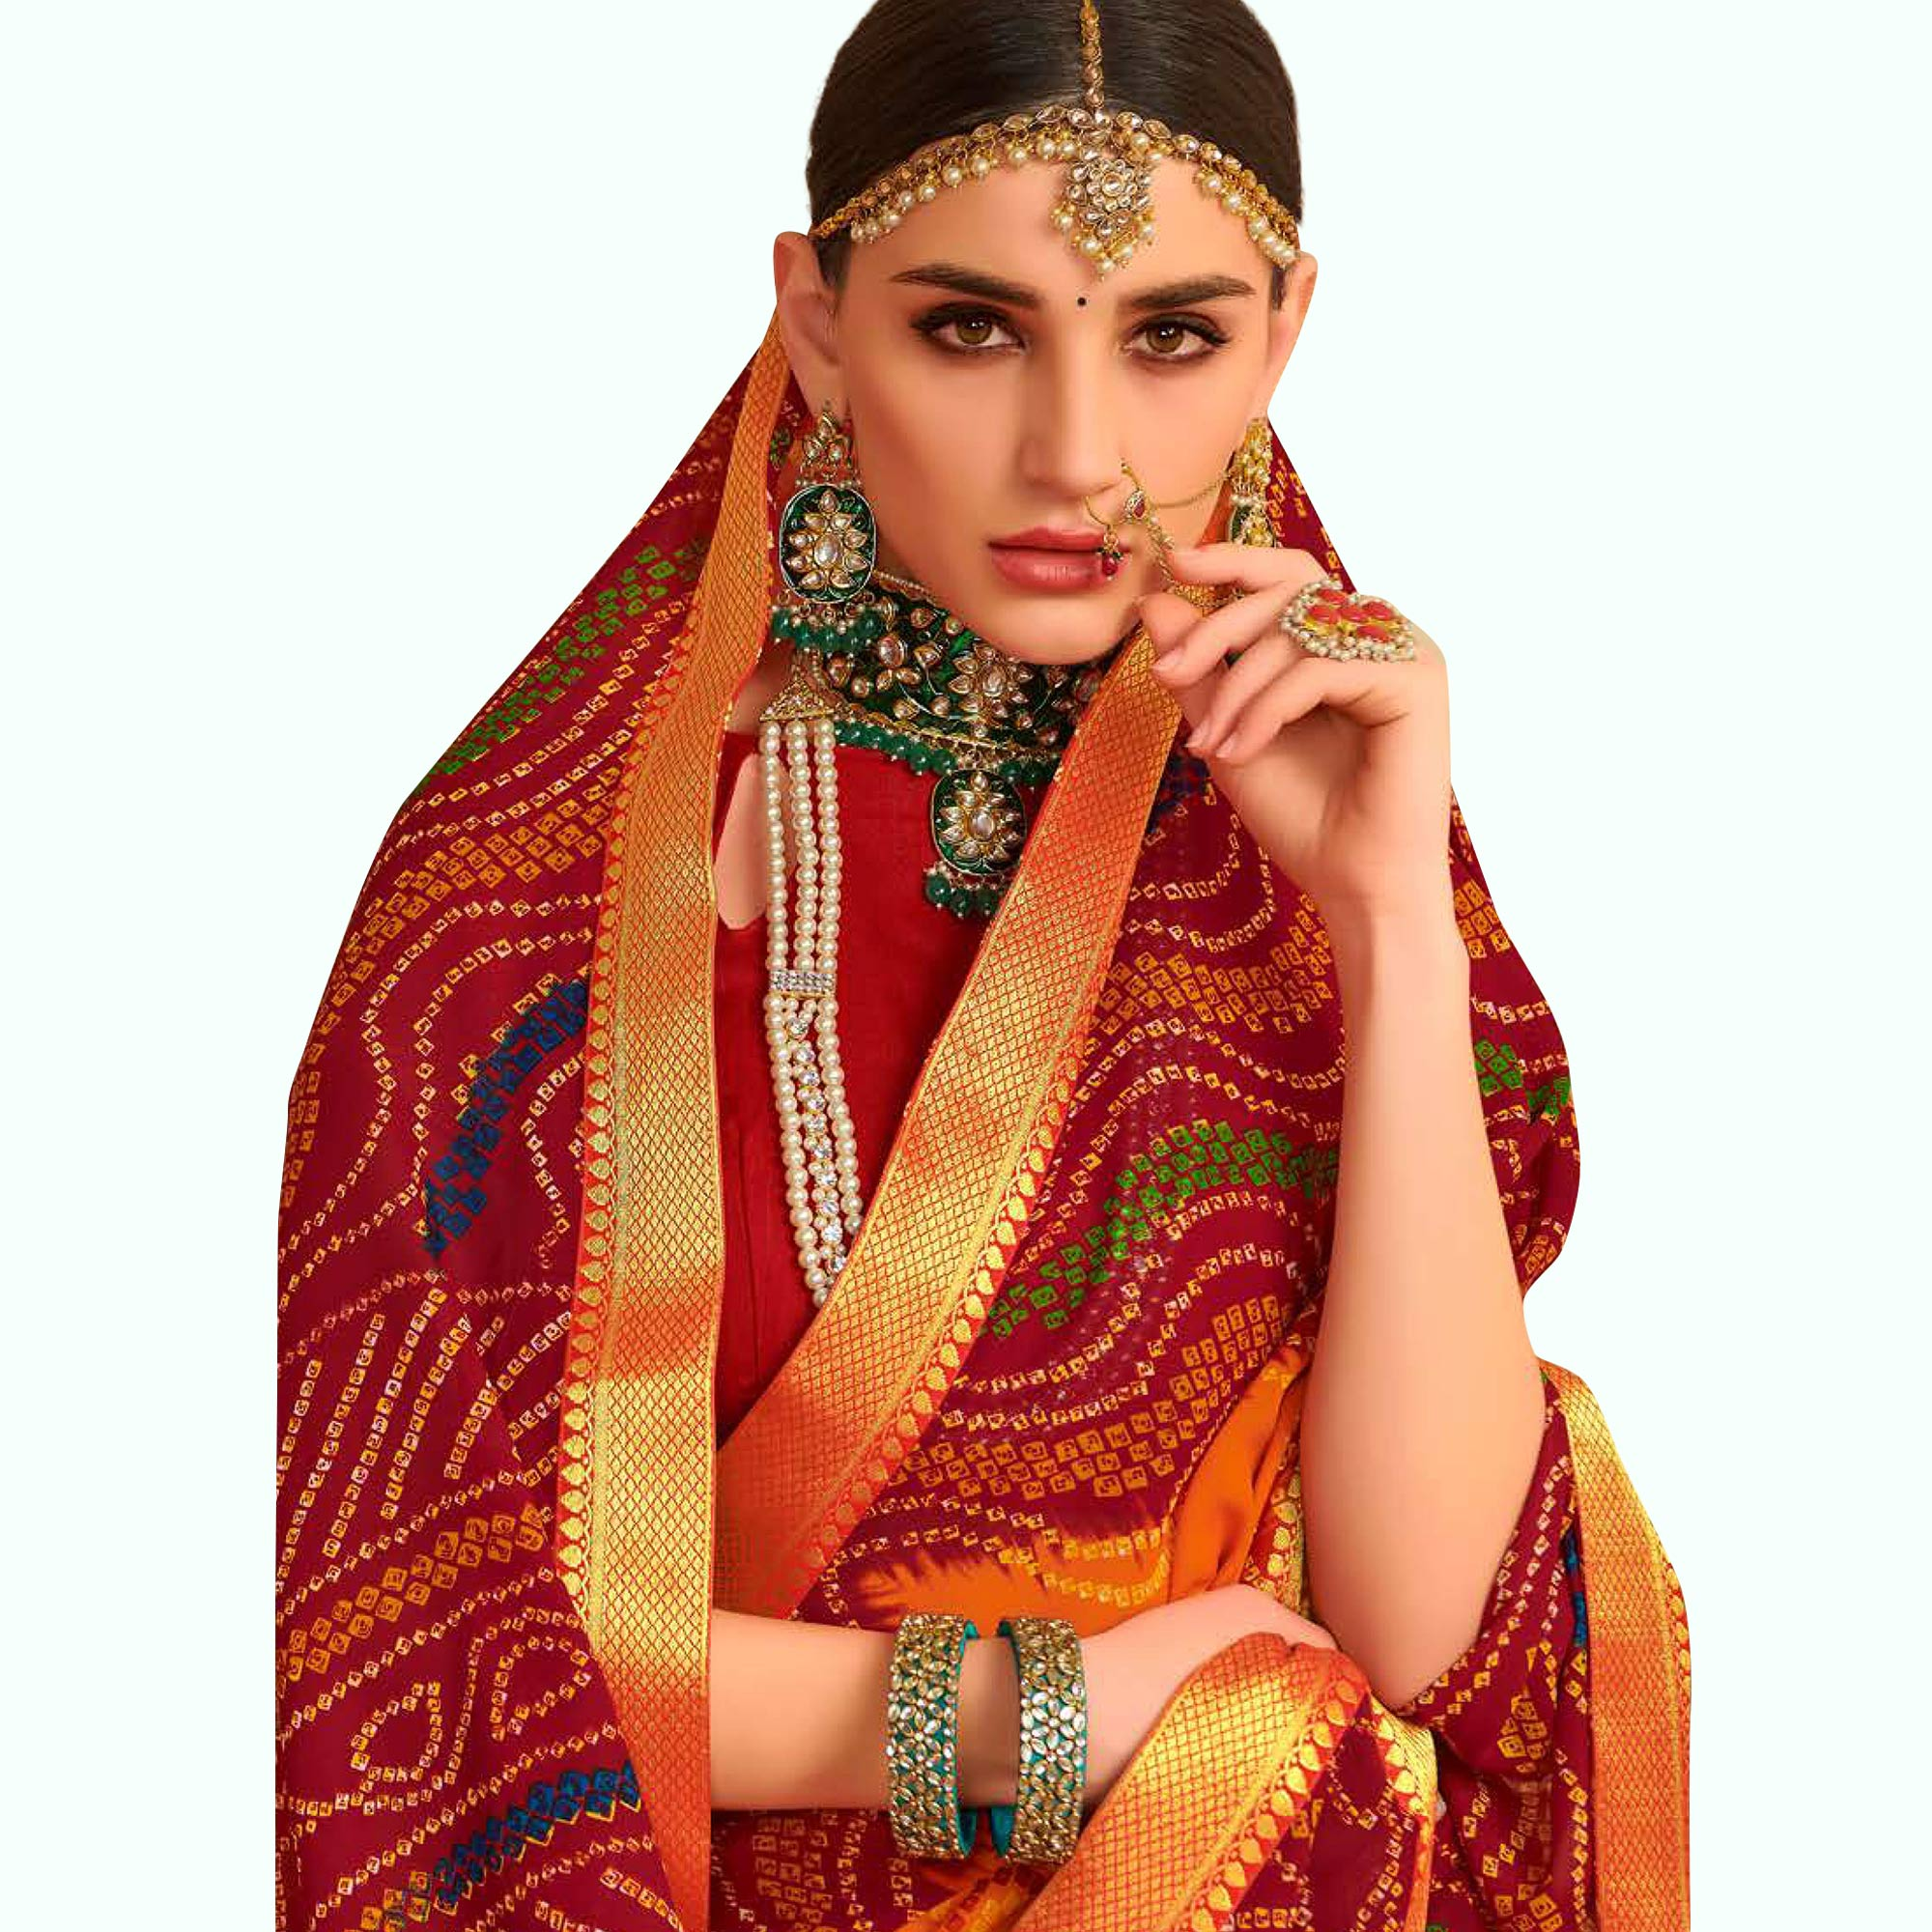 Jazzy Orange-Red Colored Bandhani Printed Heavy Georgette Saree With Jacquard Lace Border